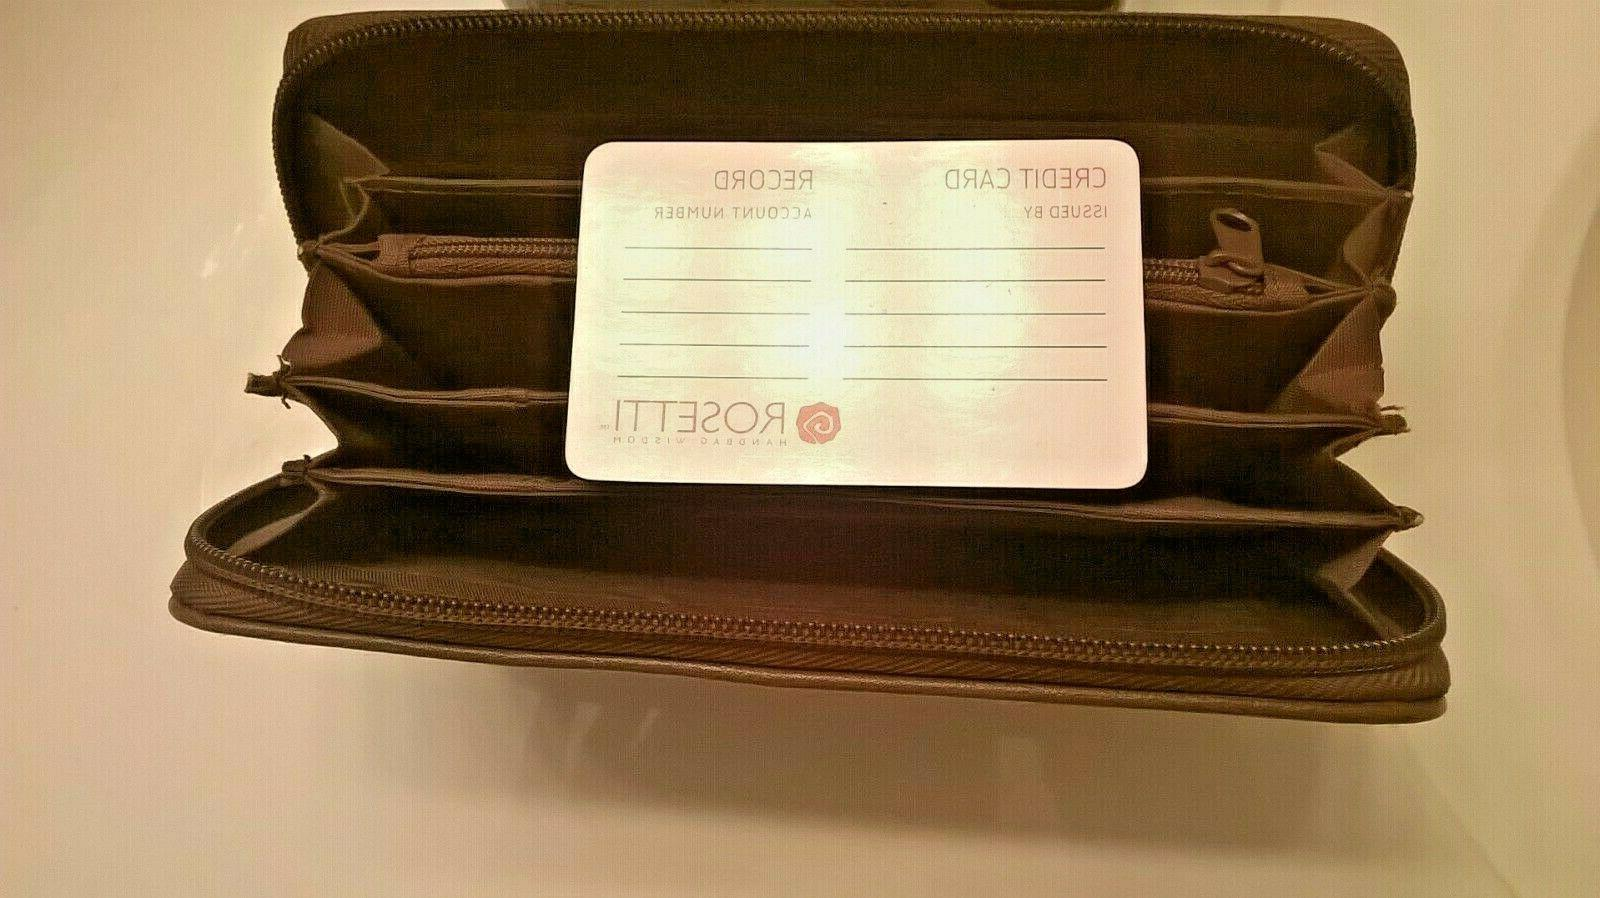 Rosetti Wallet Coupons, Checkbook, Debt Cards